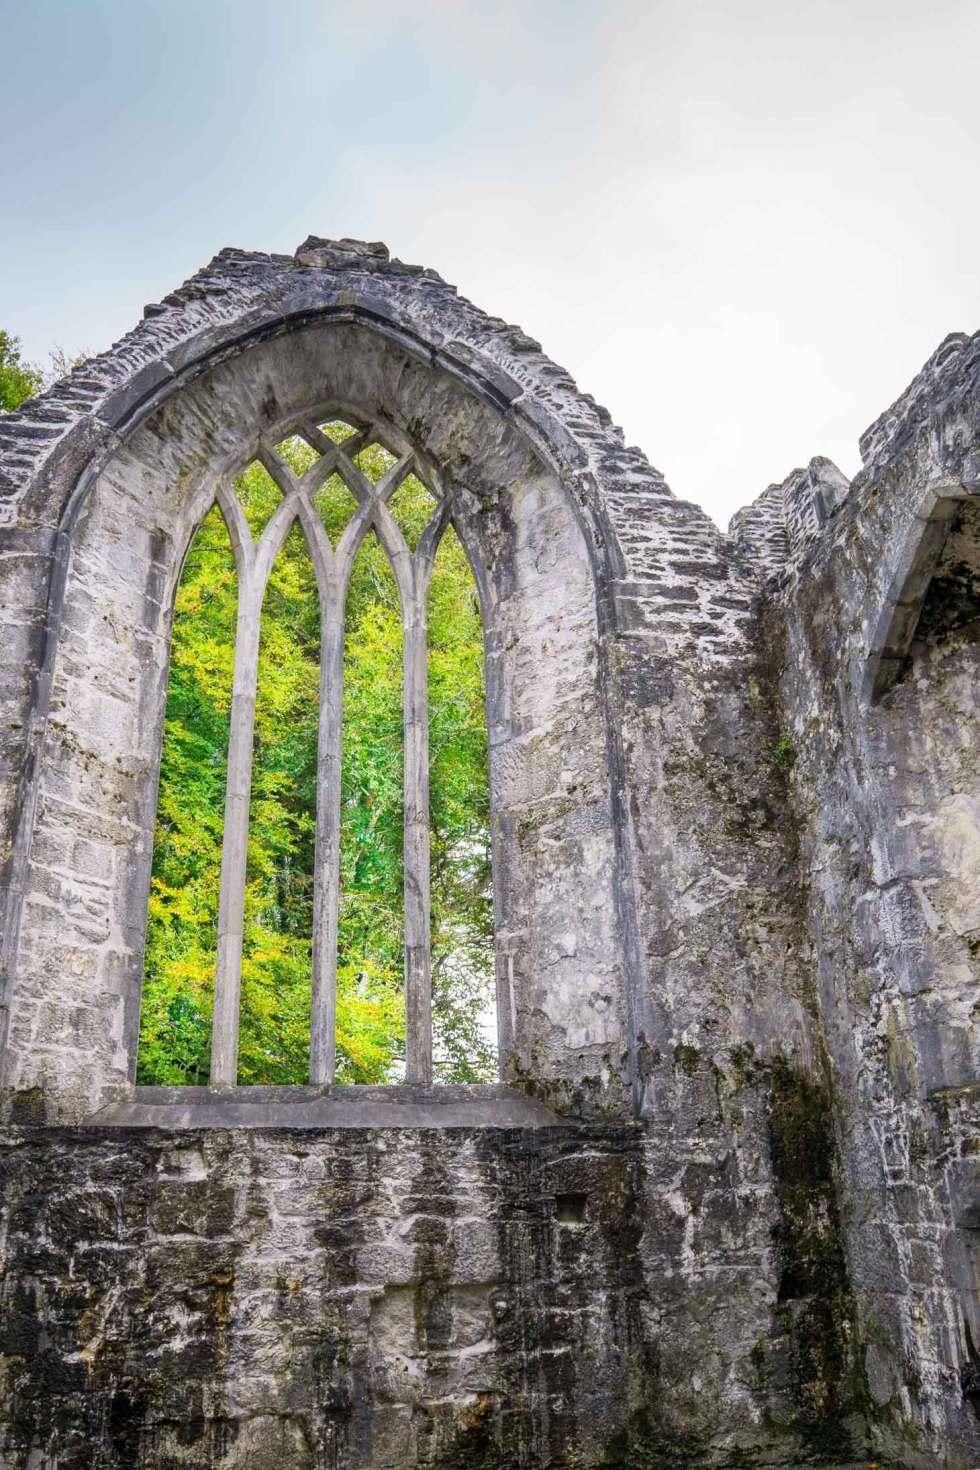 Muckross Abbey ruins are worth viewing. Don't miss the Yew tree inside!